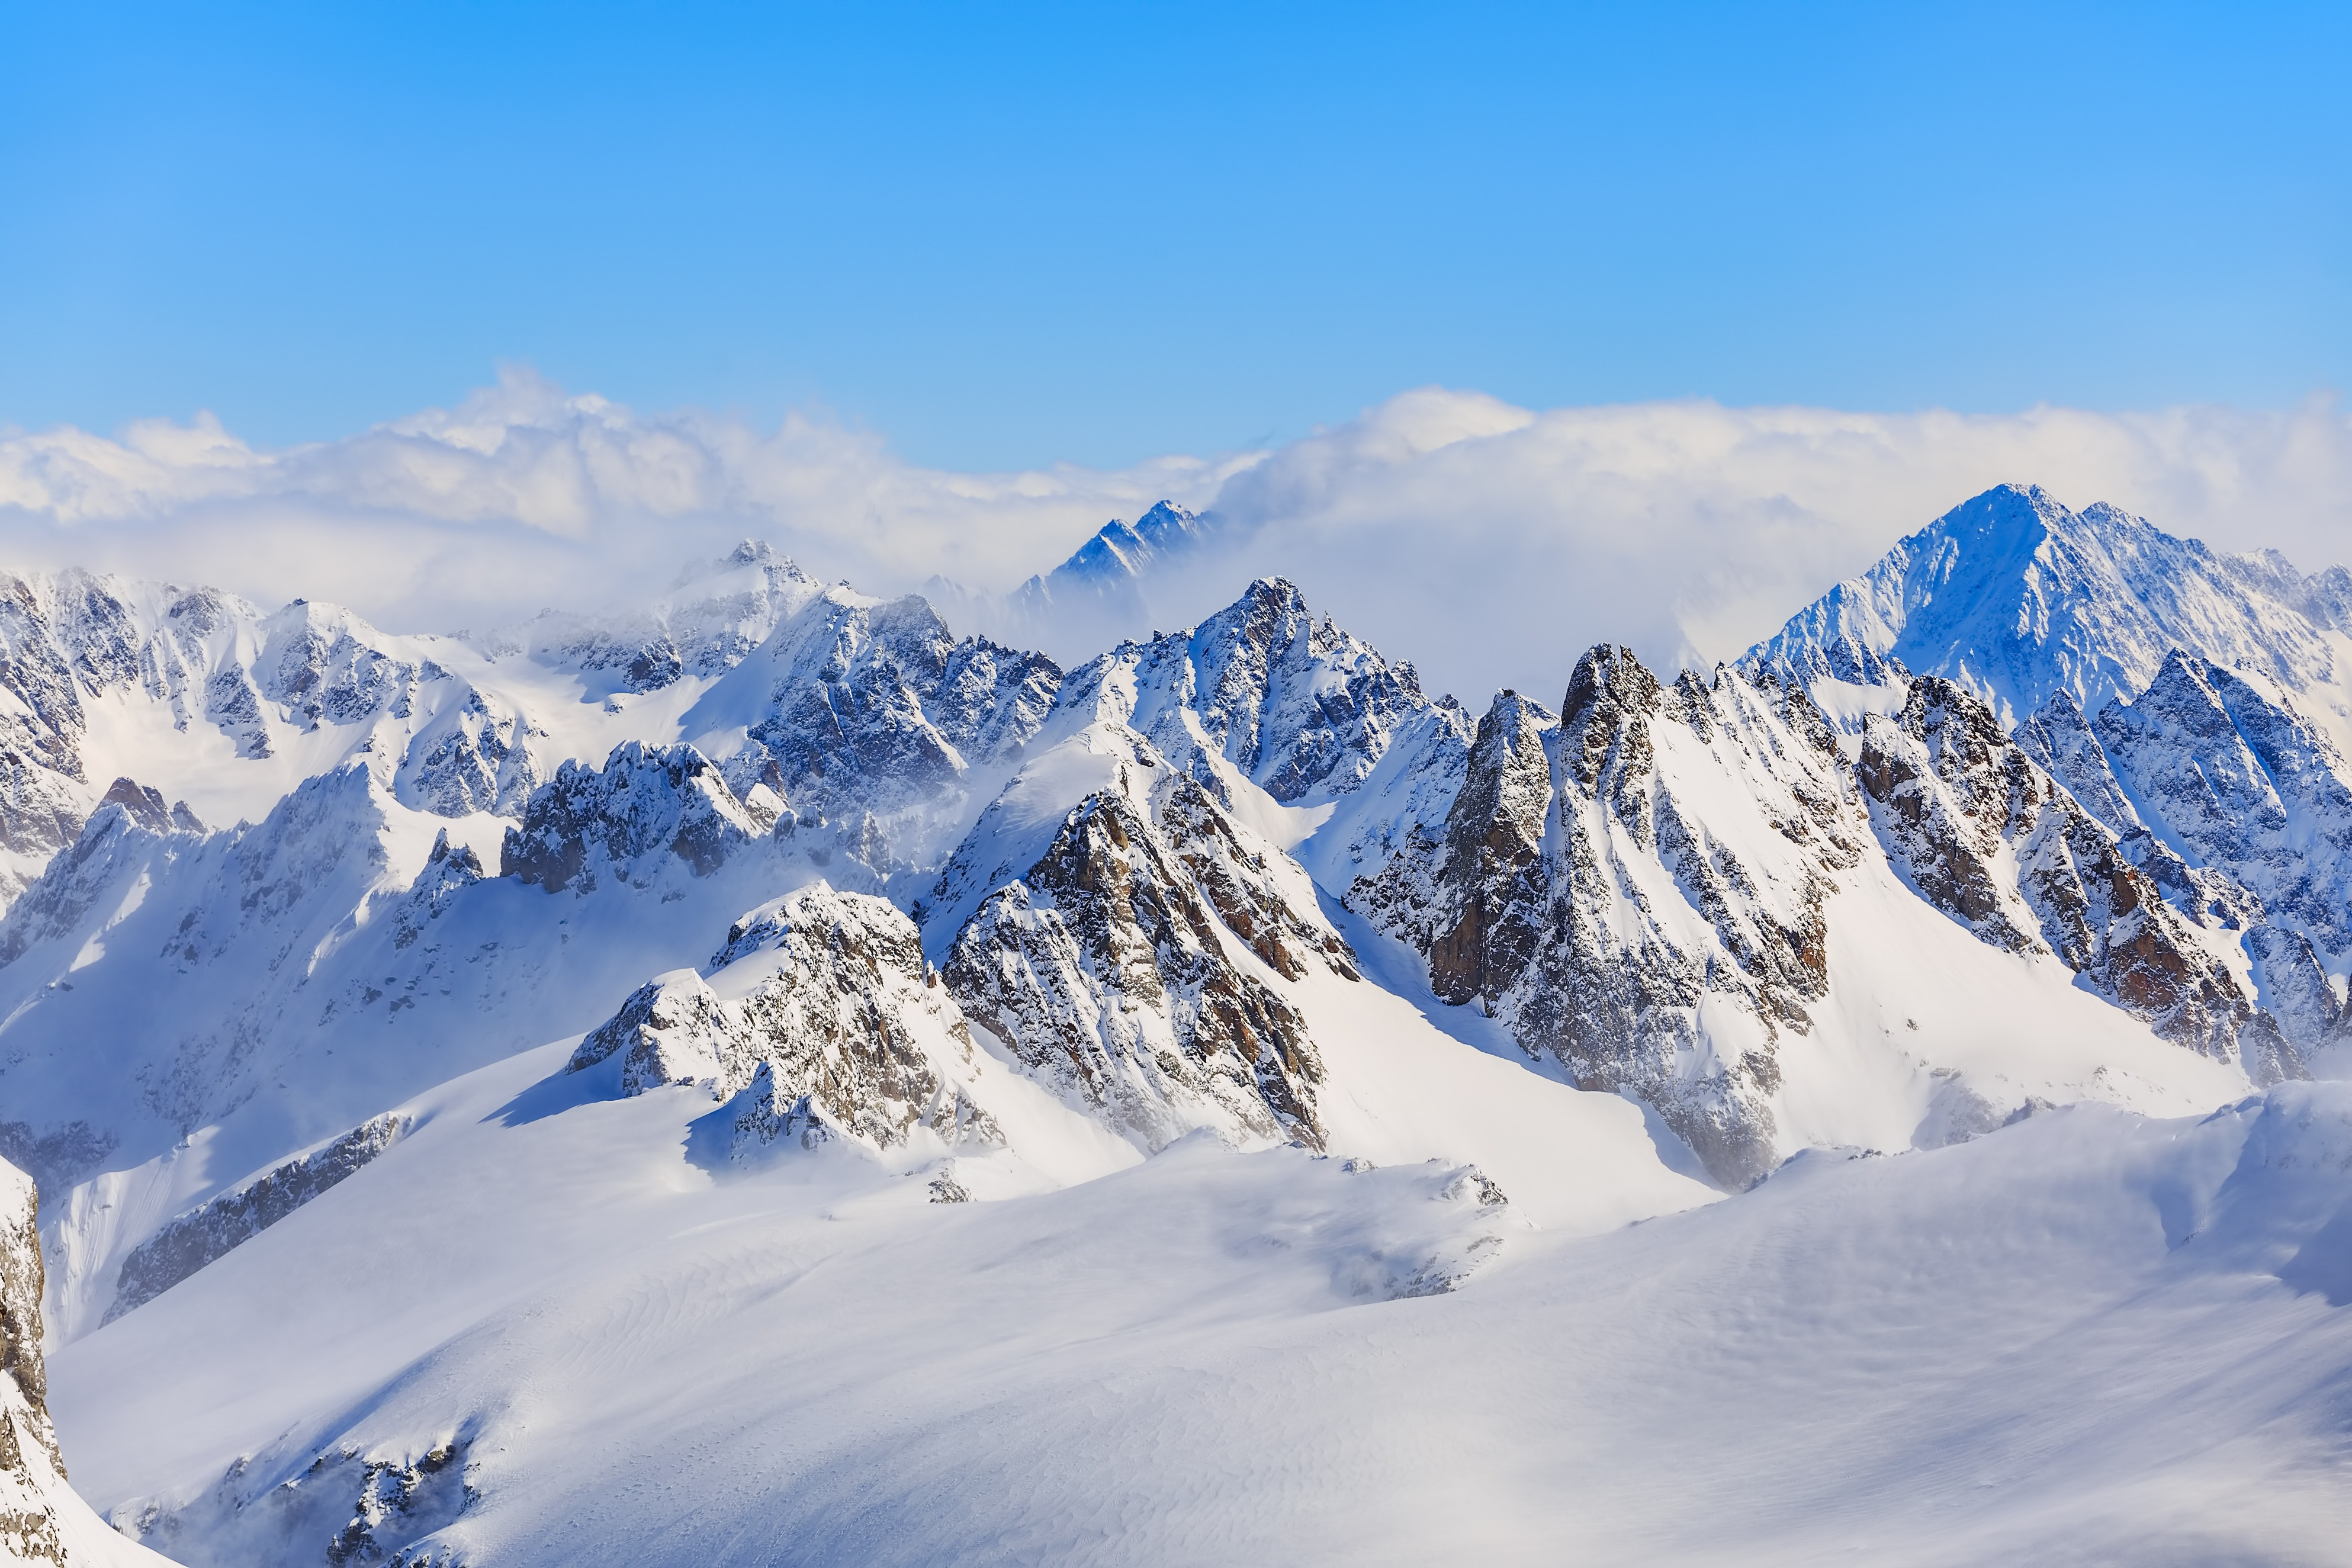 Mountain ranges covered in snow photo